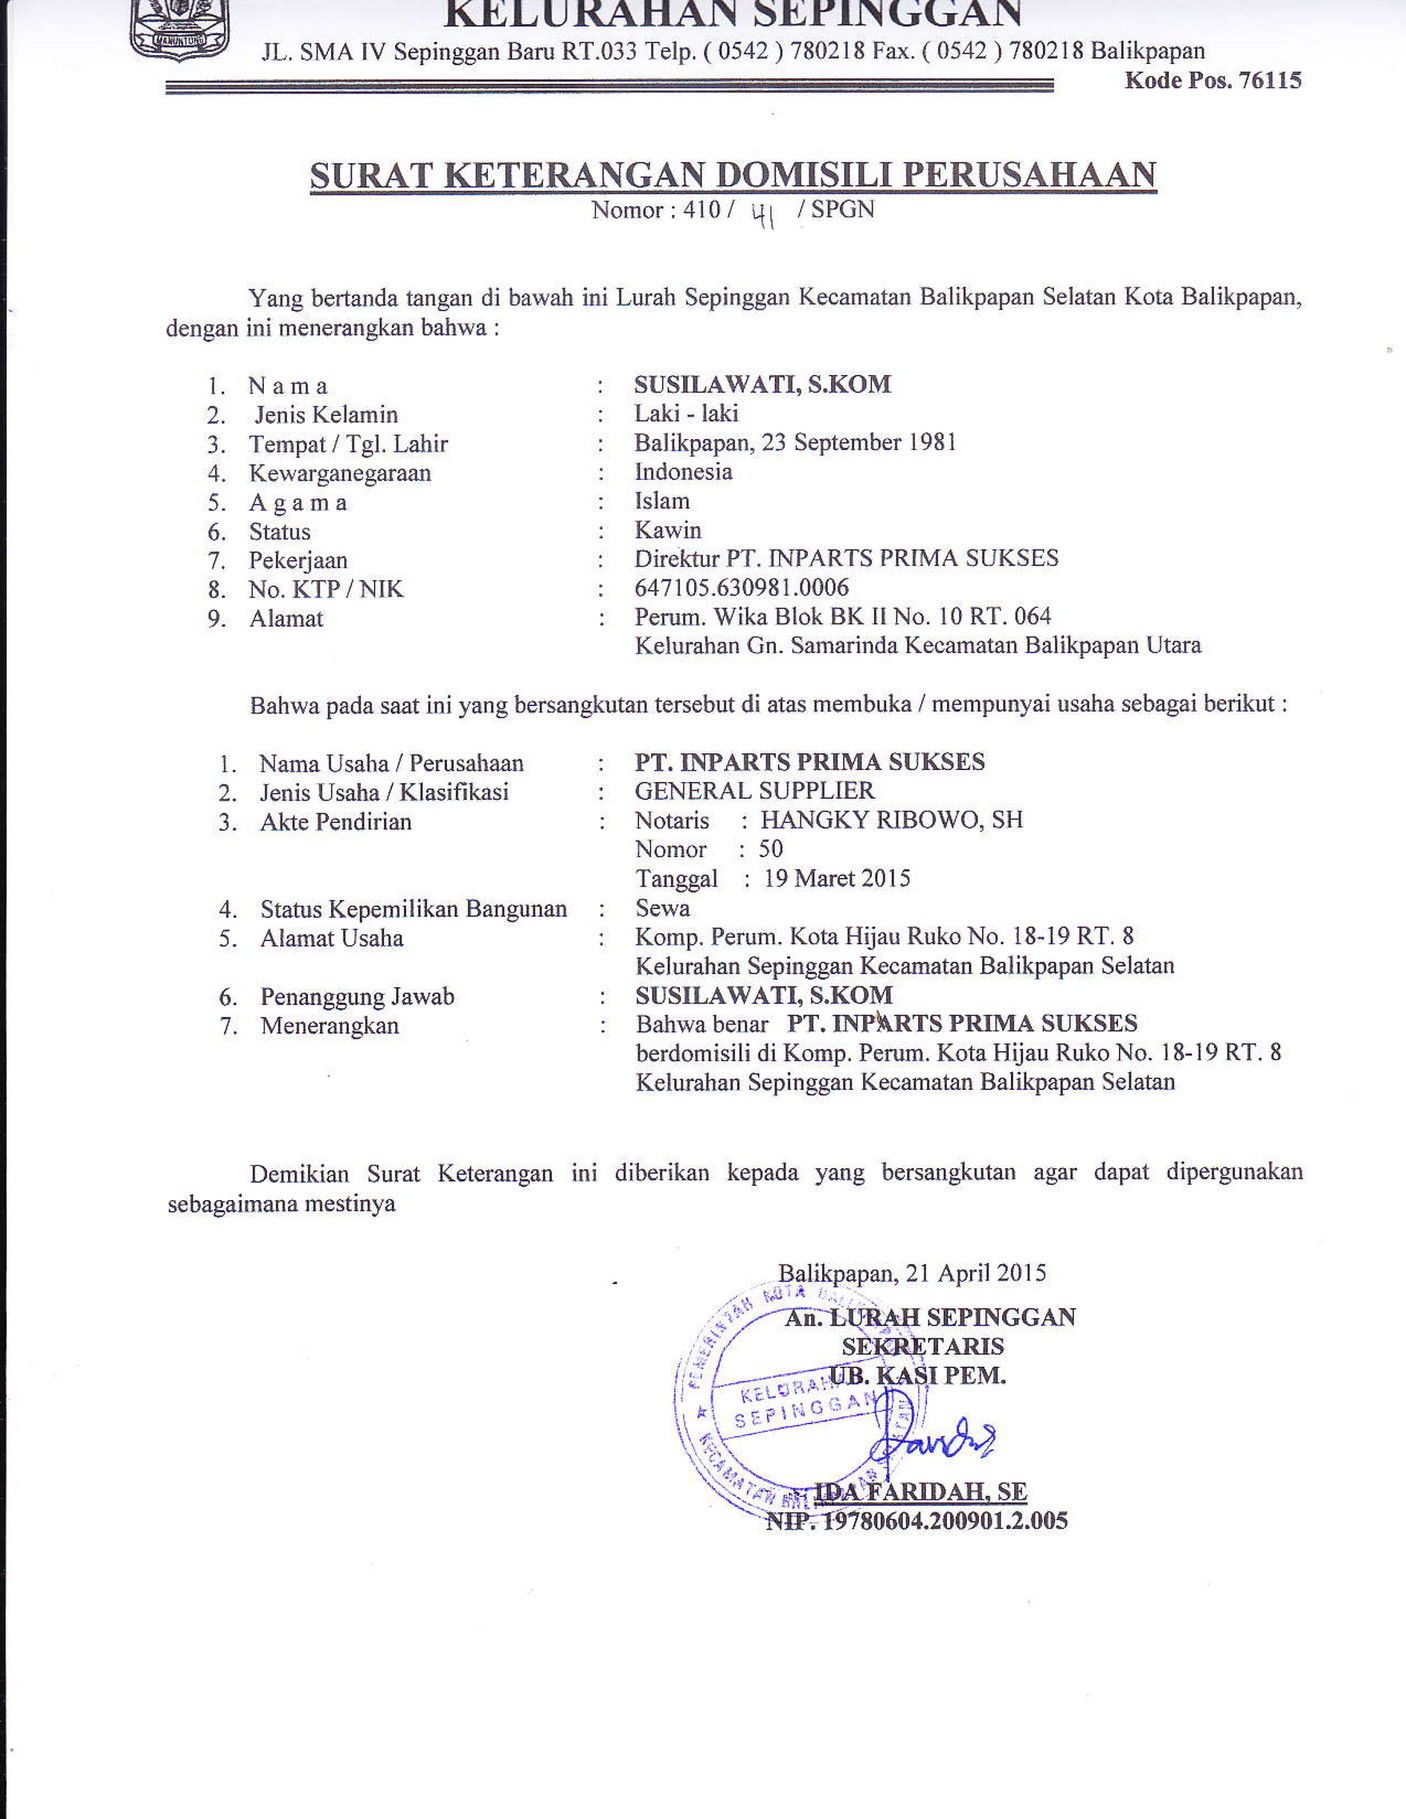 My Publications Surat Keterangan Domisili Inparts Page 1